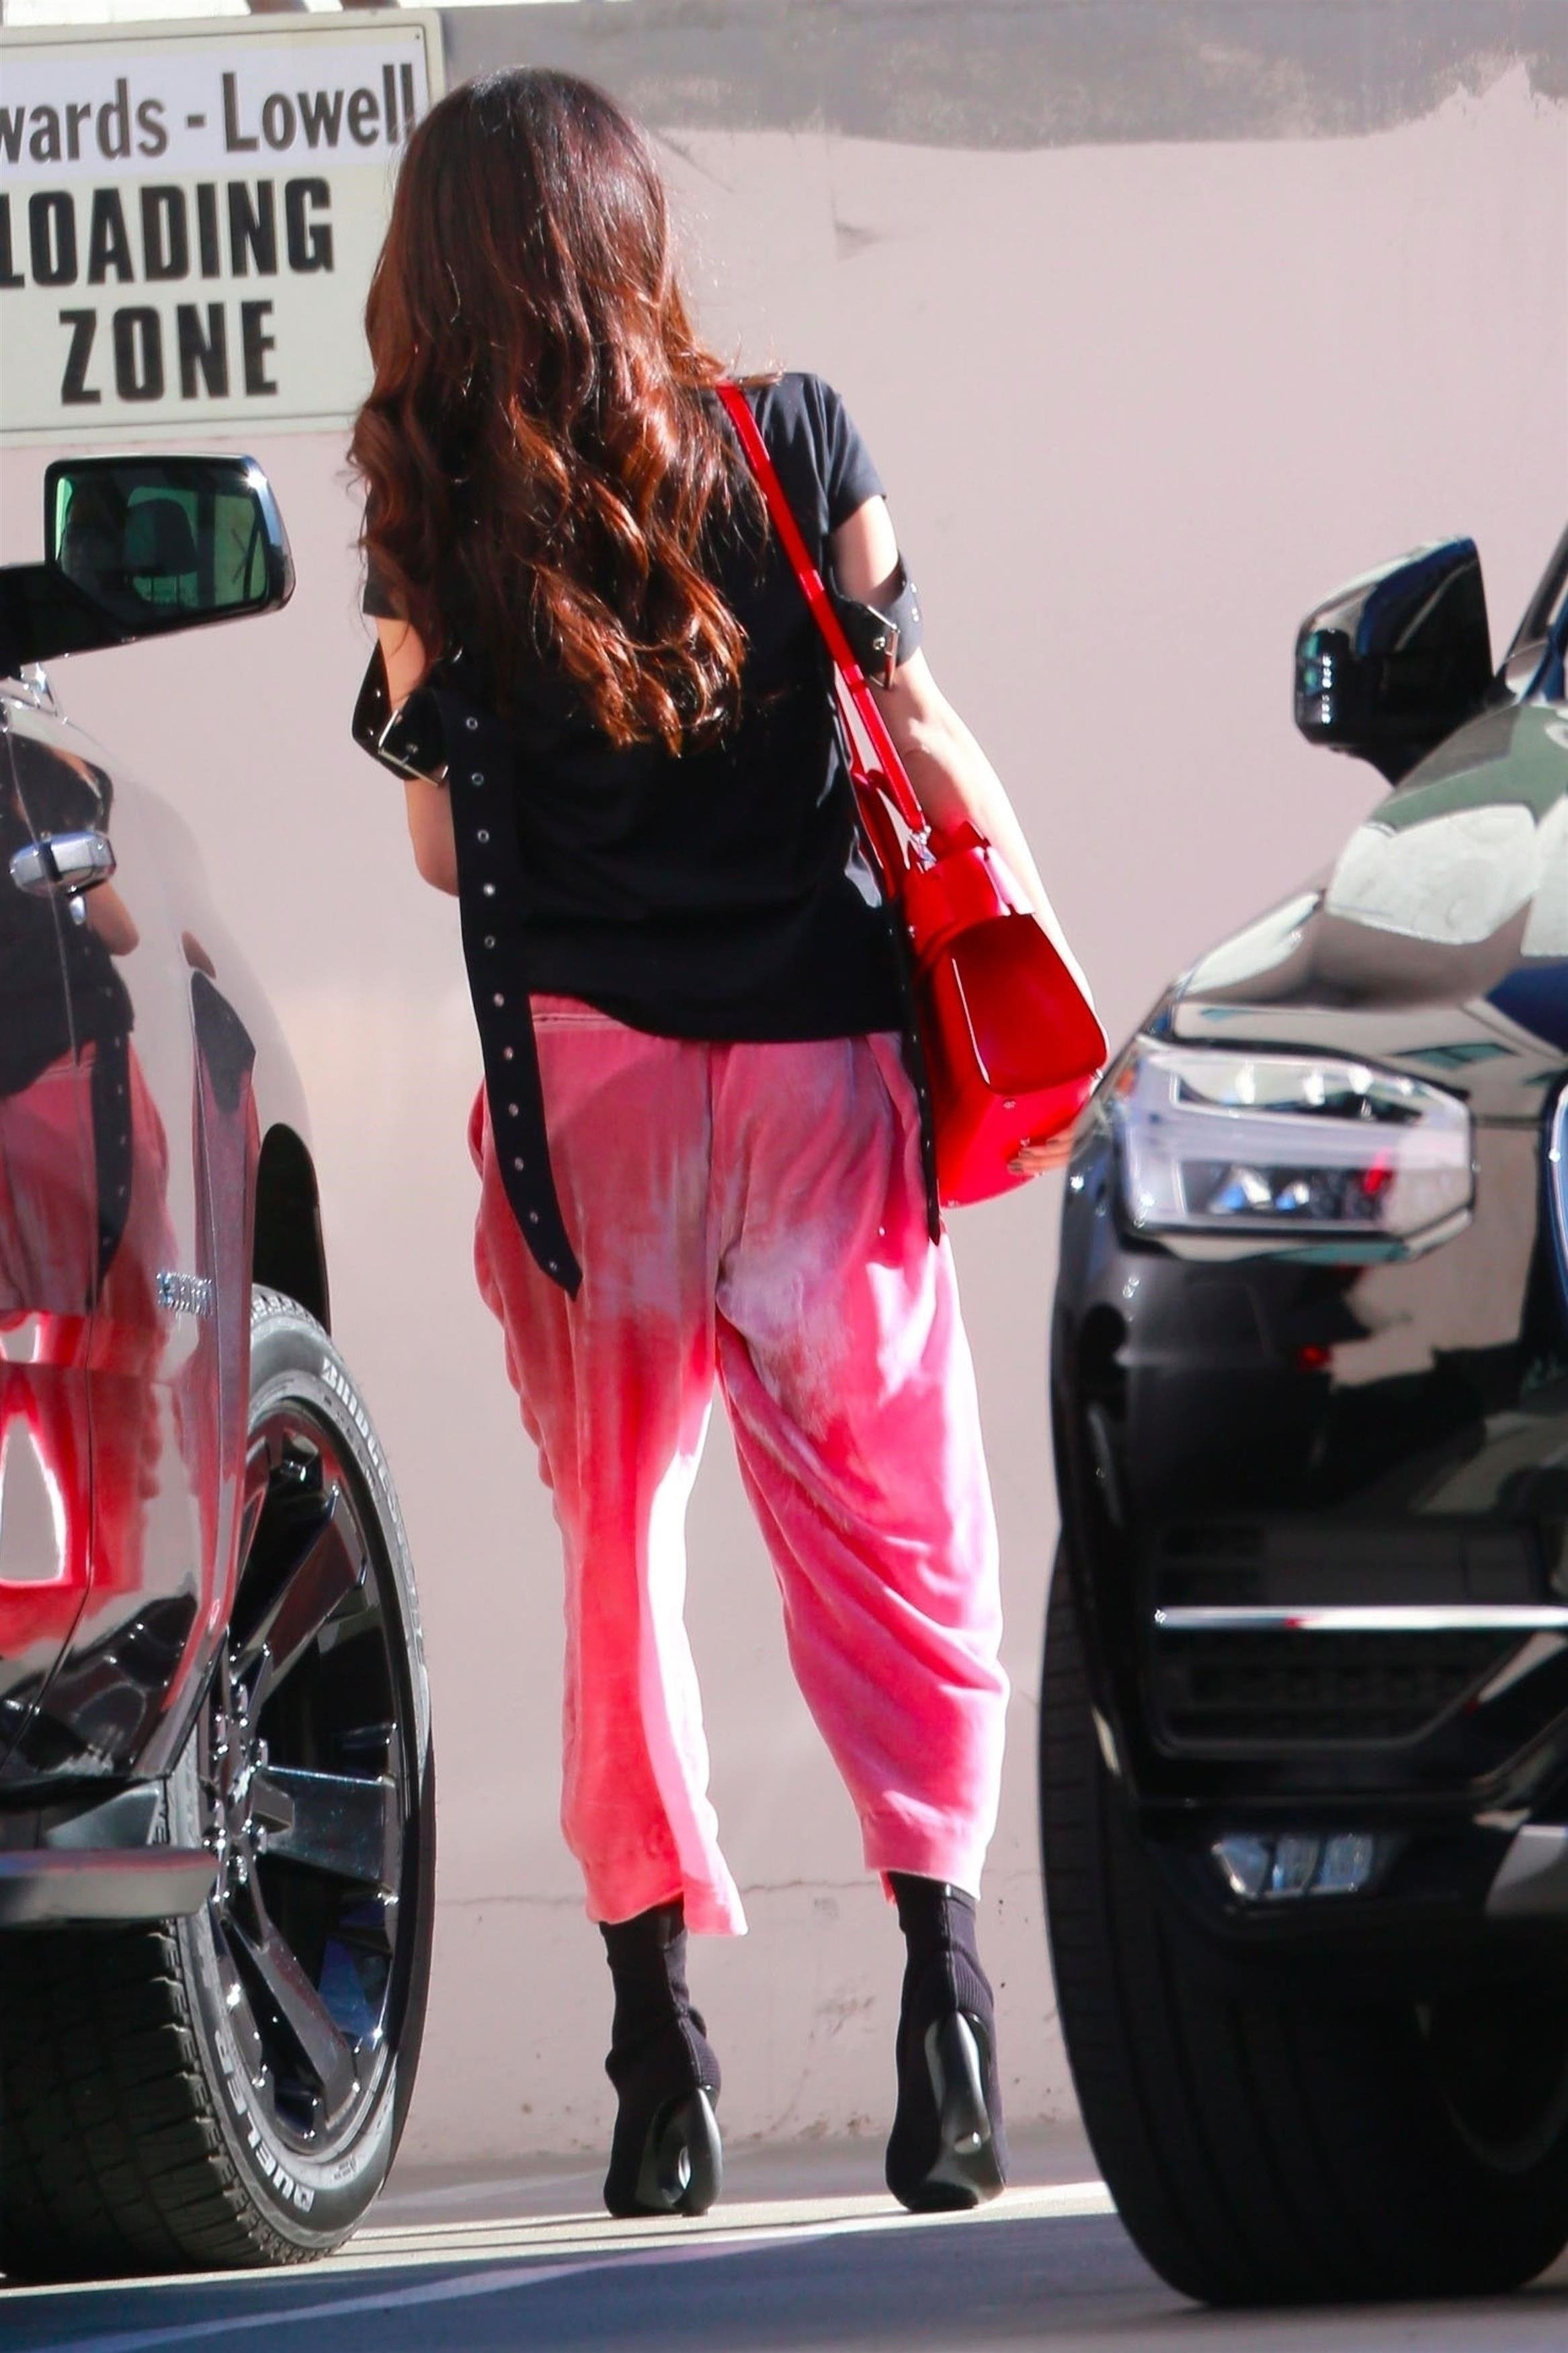 Beverly Hills, CA  - *EXCLUSIVE*  - Amal Clooney is seen stopping by the Cristina Radu European Skin salon in Beverly Hills. Amal looked stylish in a pair of baggy pink pants, black shirt and black heels.  Pictured: Amal Clooney  BACKGRID USA 26 FEBRUARY 2018, Image: 364414569, License: Rights-managed, Restrictions: , Model Release: no, Credit line: Profimedia, AKM-GSI